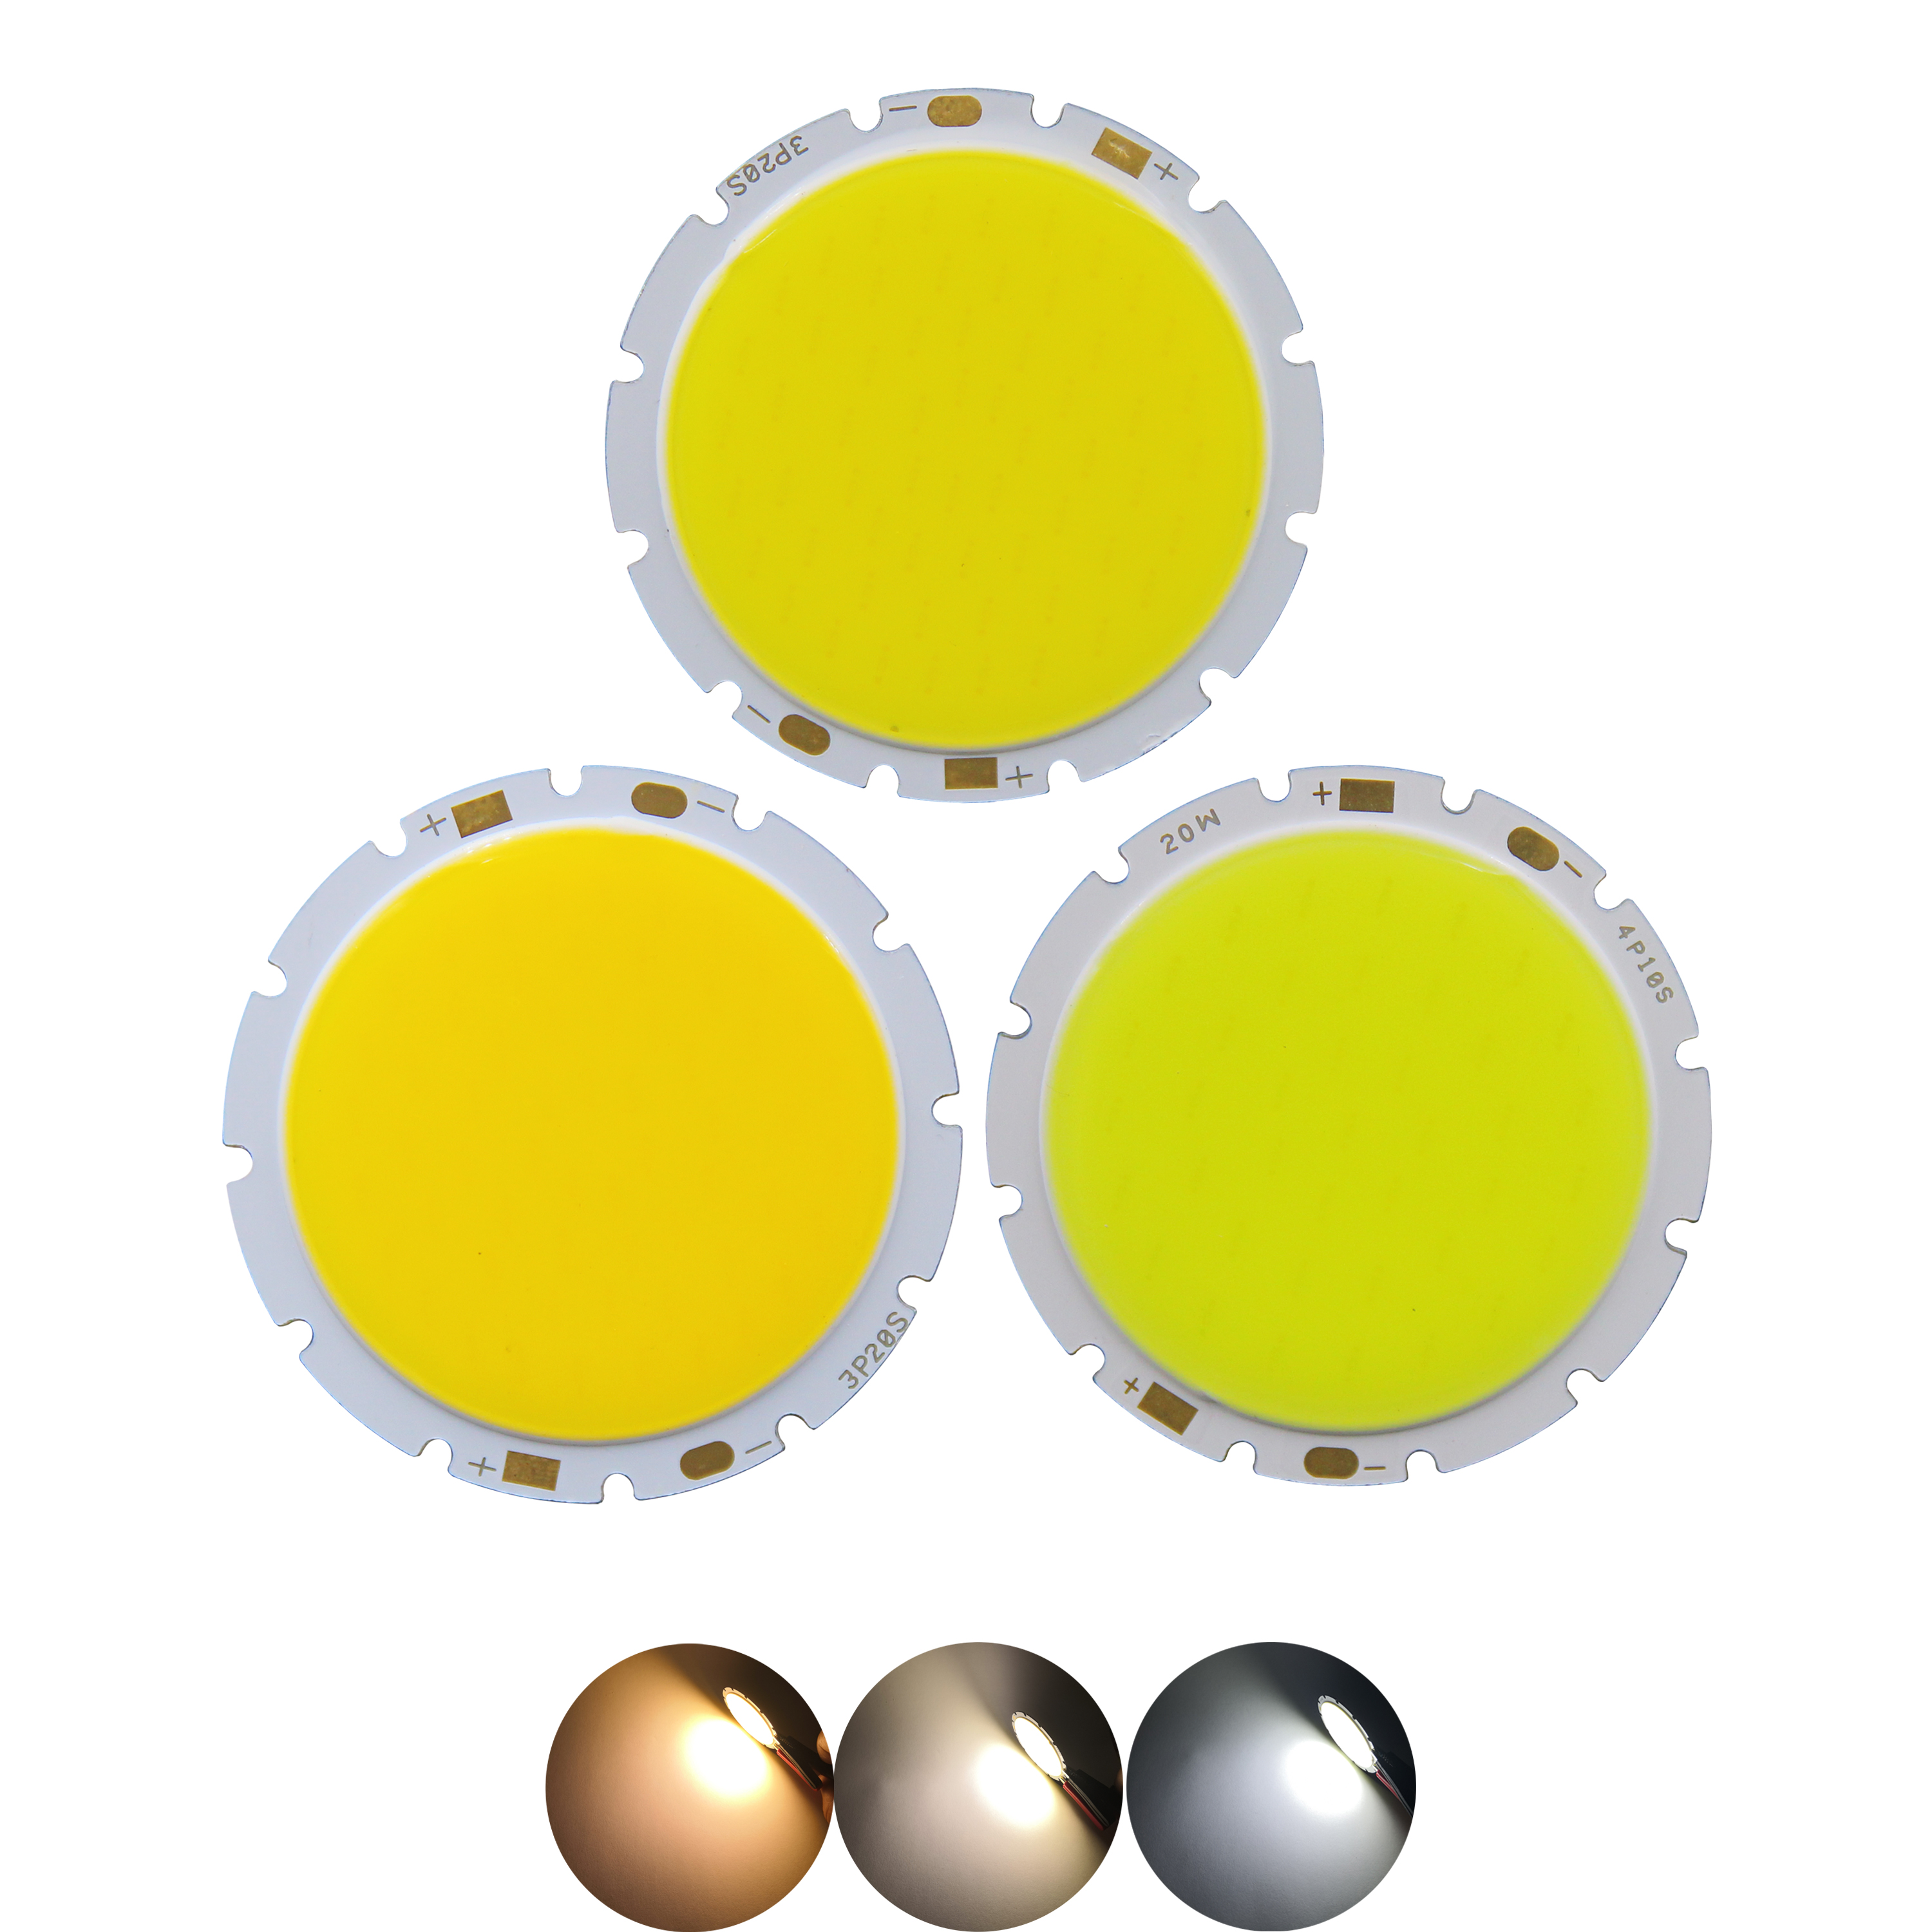 factory sale 49mm 42mm round <font><b>LED</b></font> COB Light Source Module warm nature white 15W 20W 30W lamp flip chips for downlight image